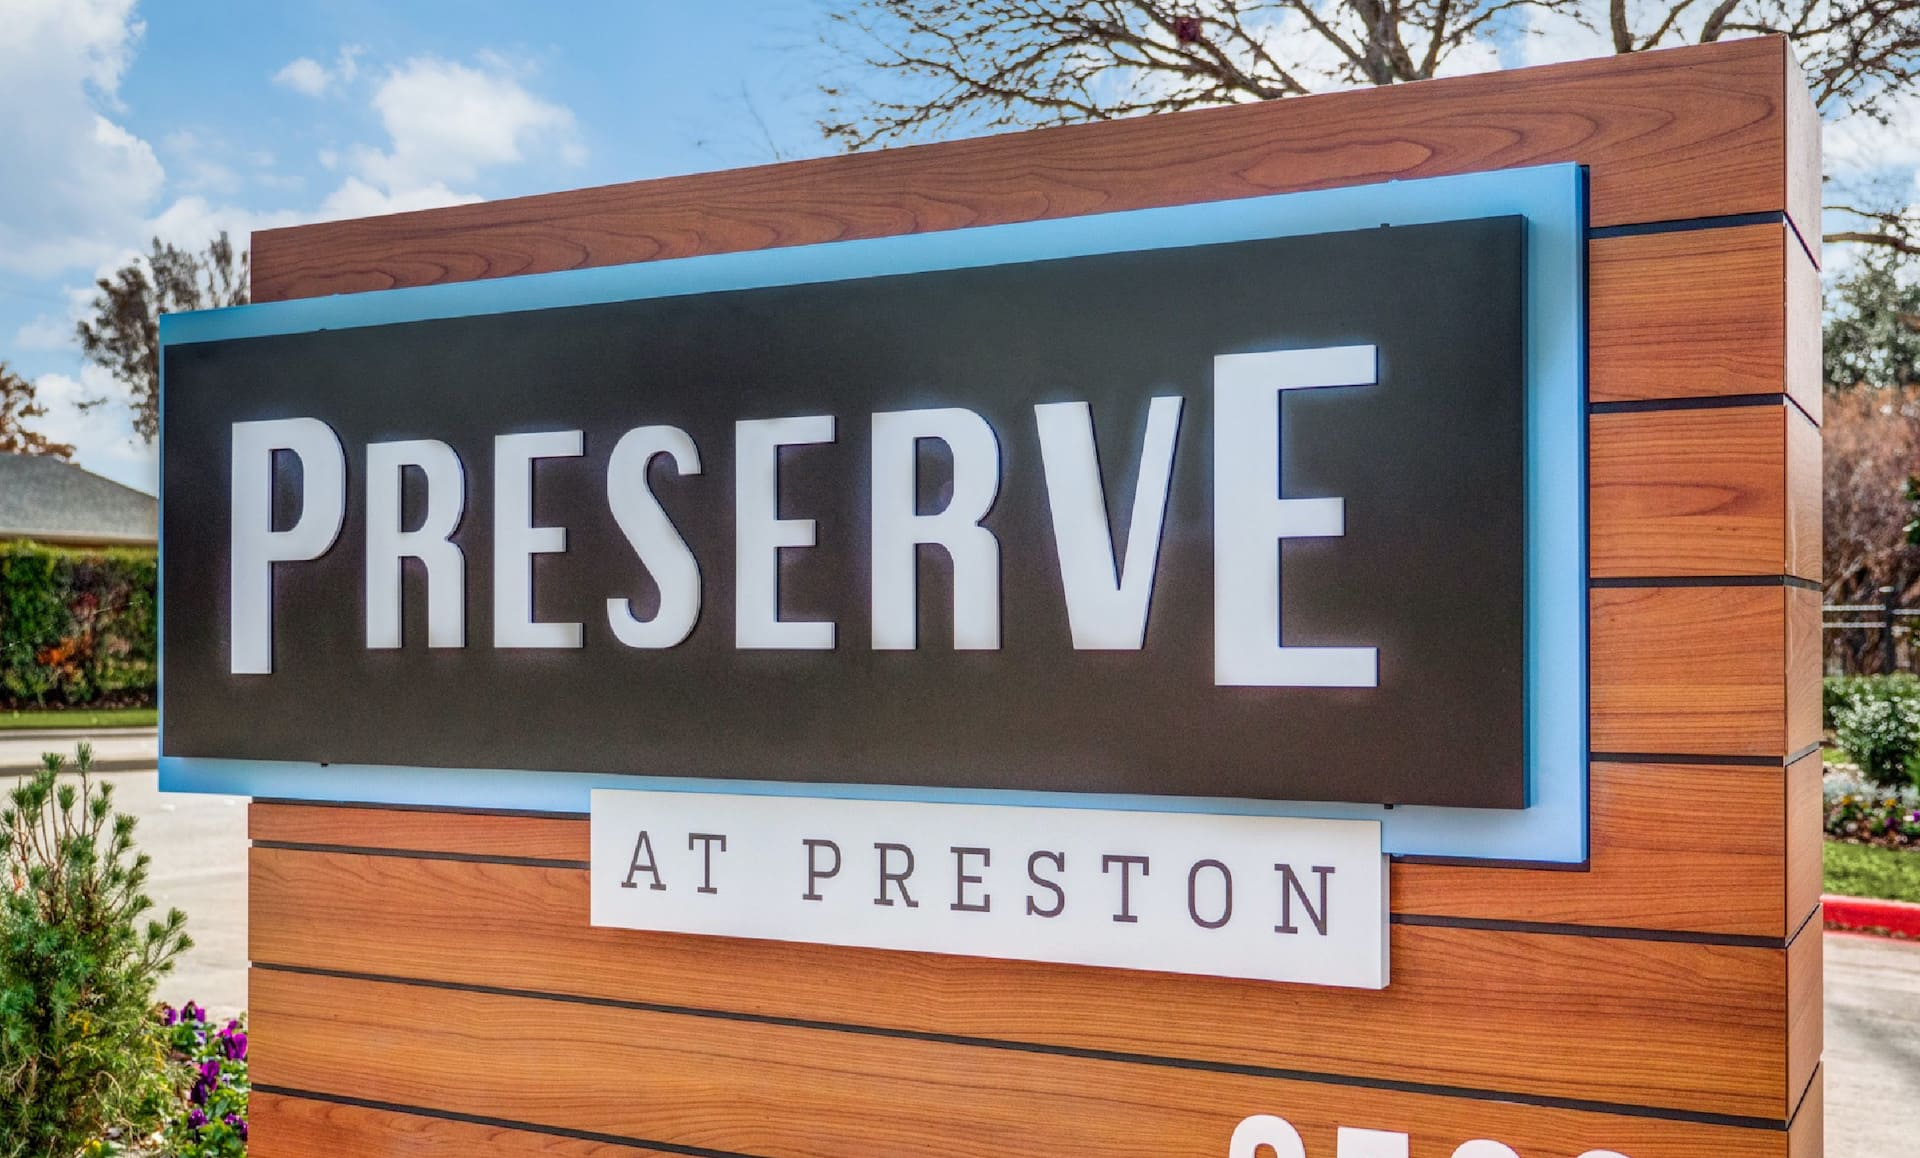 The Preserve at Preston